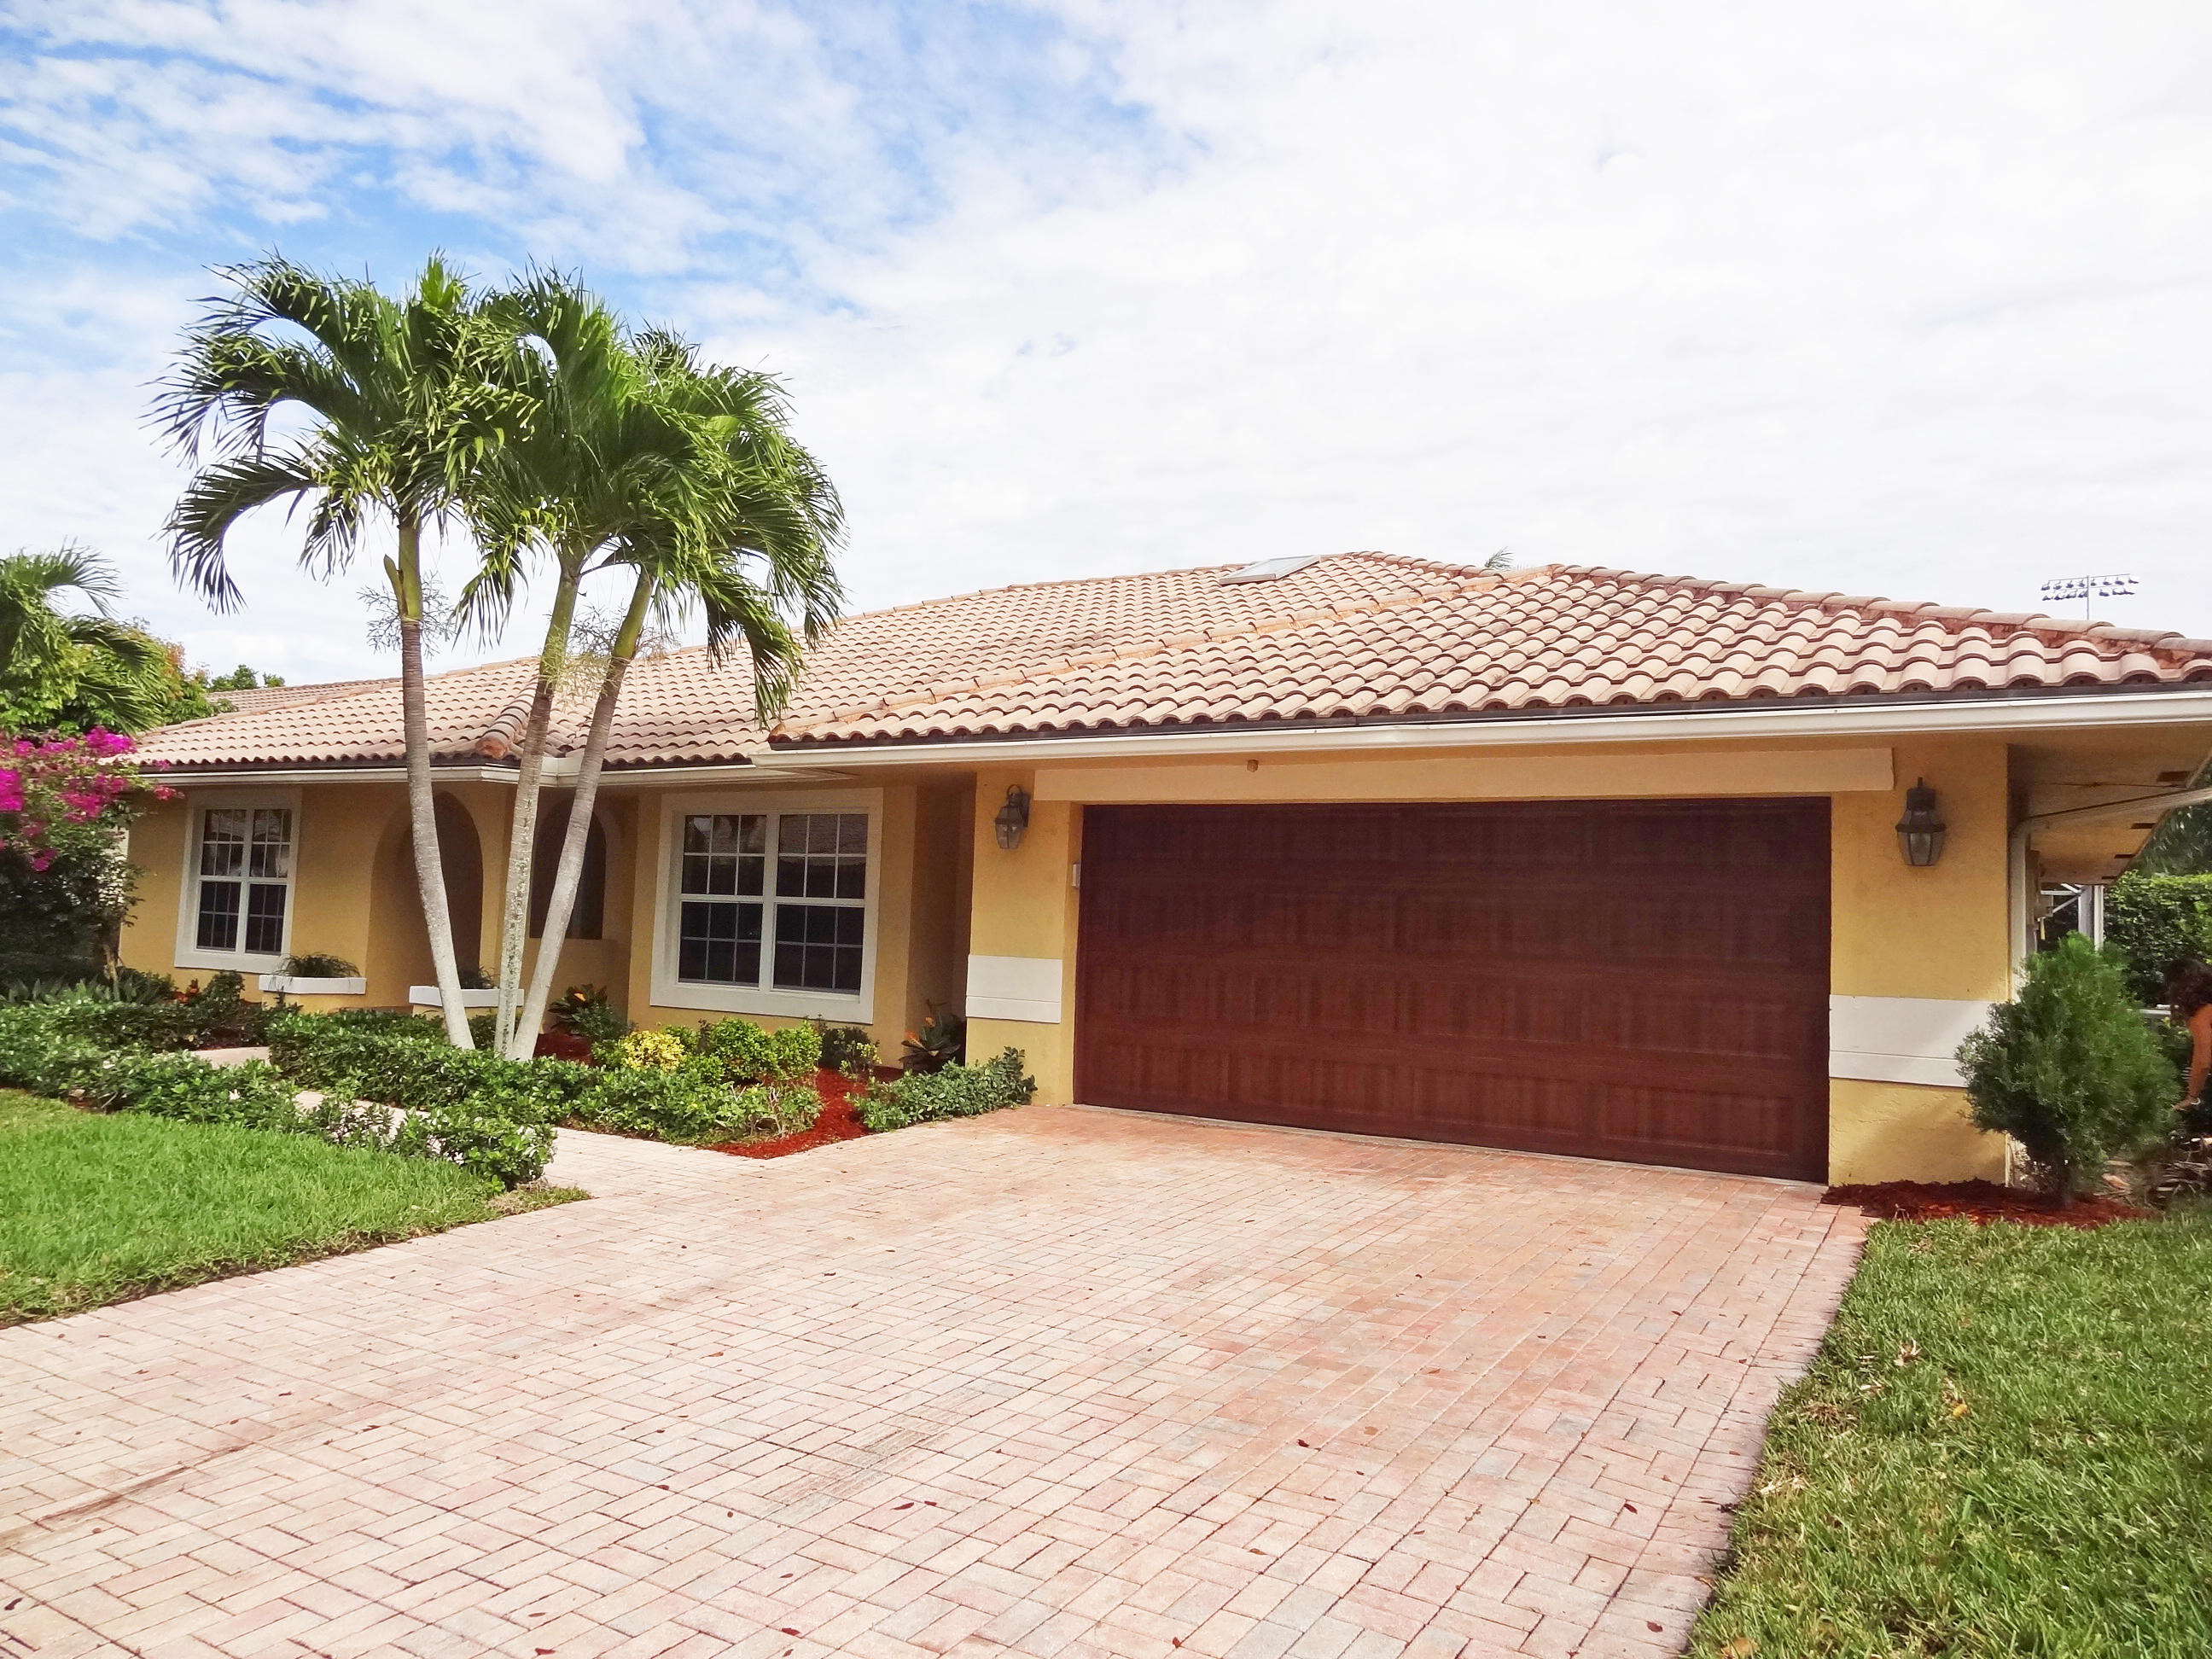 Photo of 2656 NW 27th Terrace, Boca Raton, FL 33434